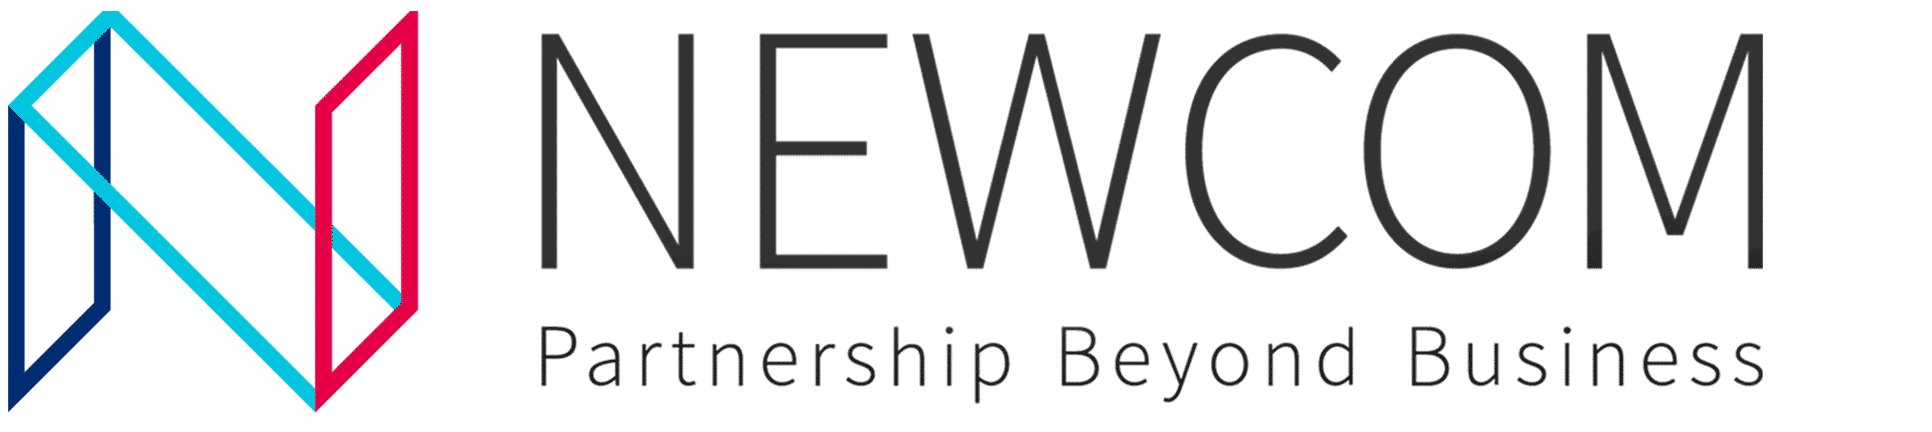 Newcom-logo-for-website—final